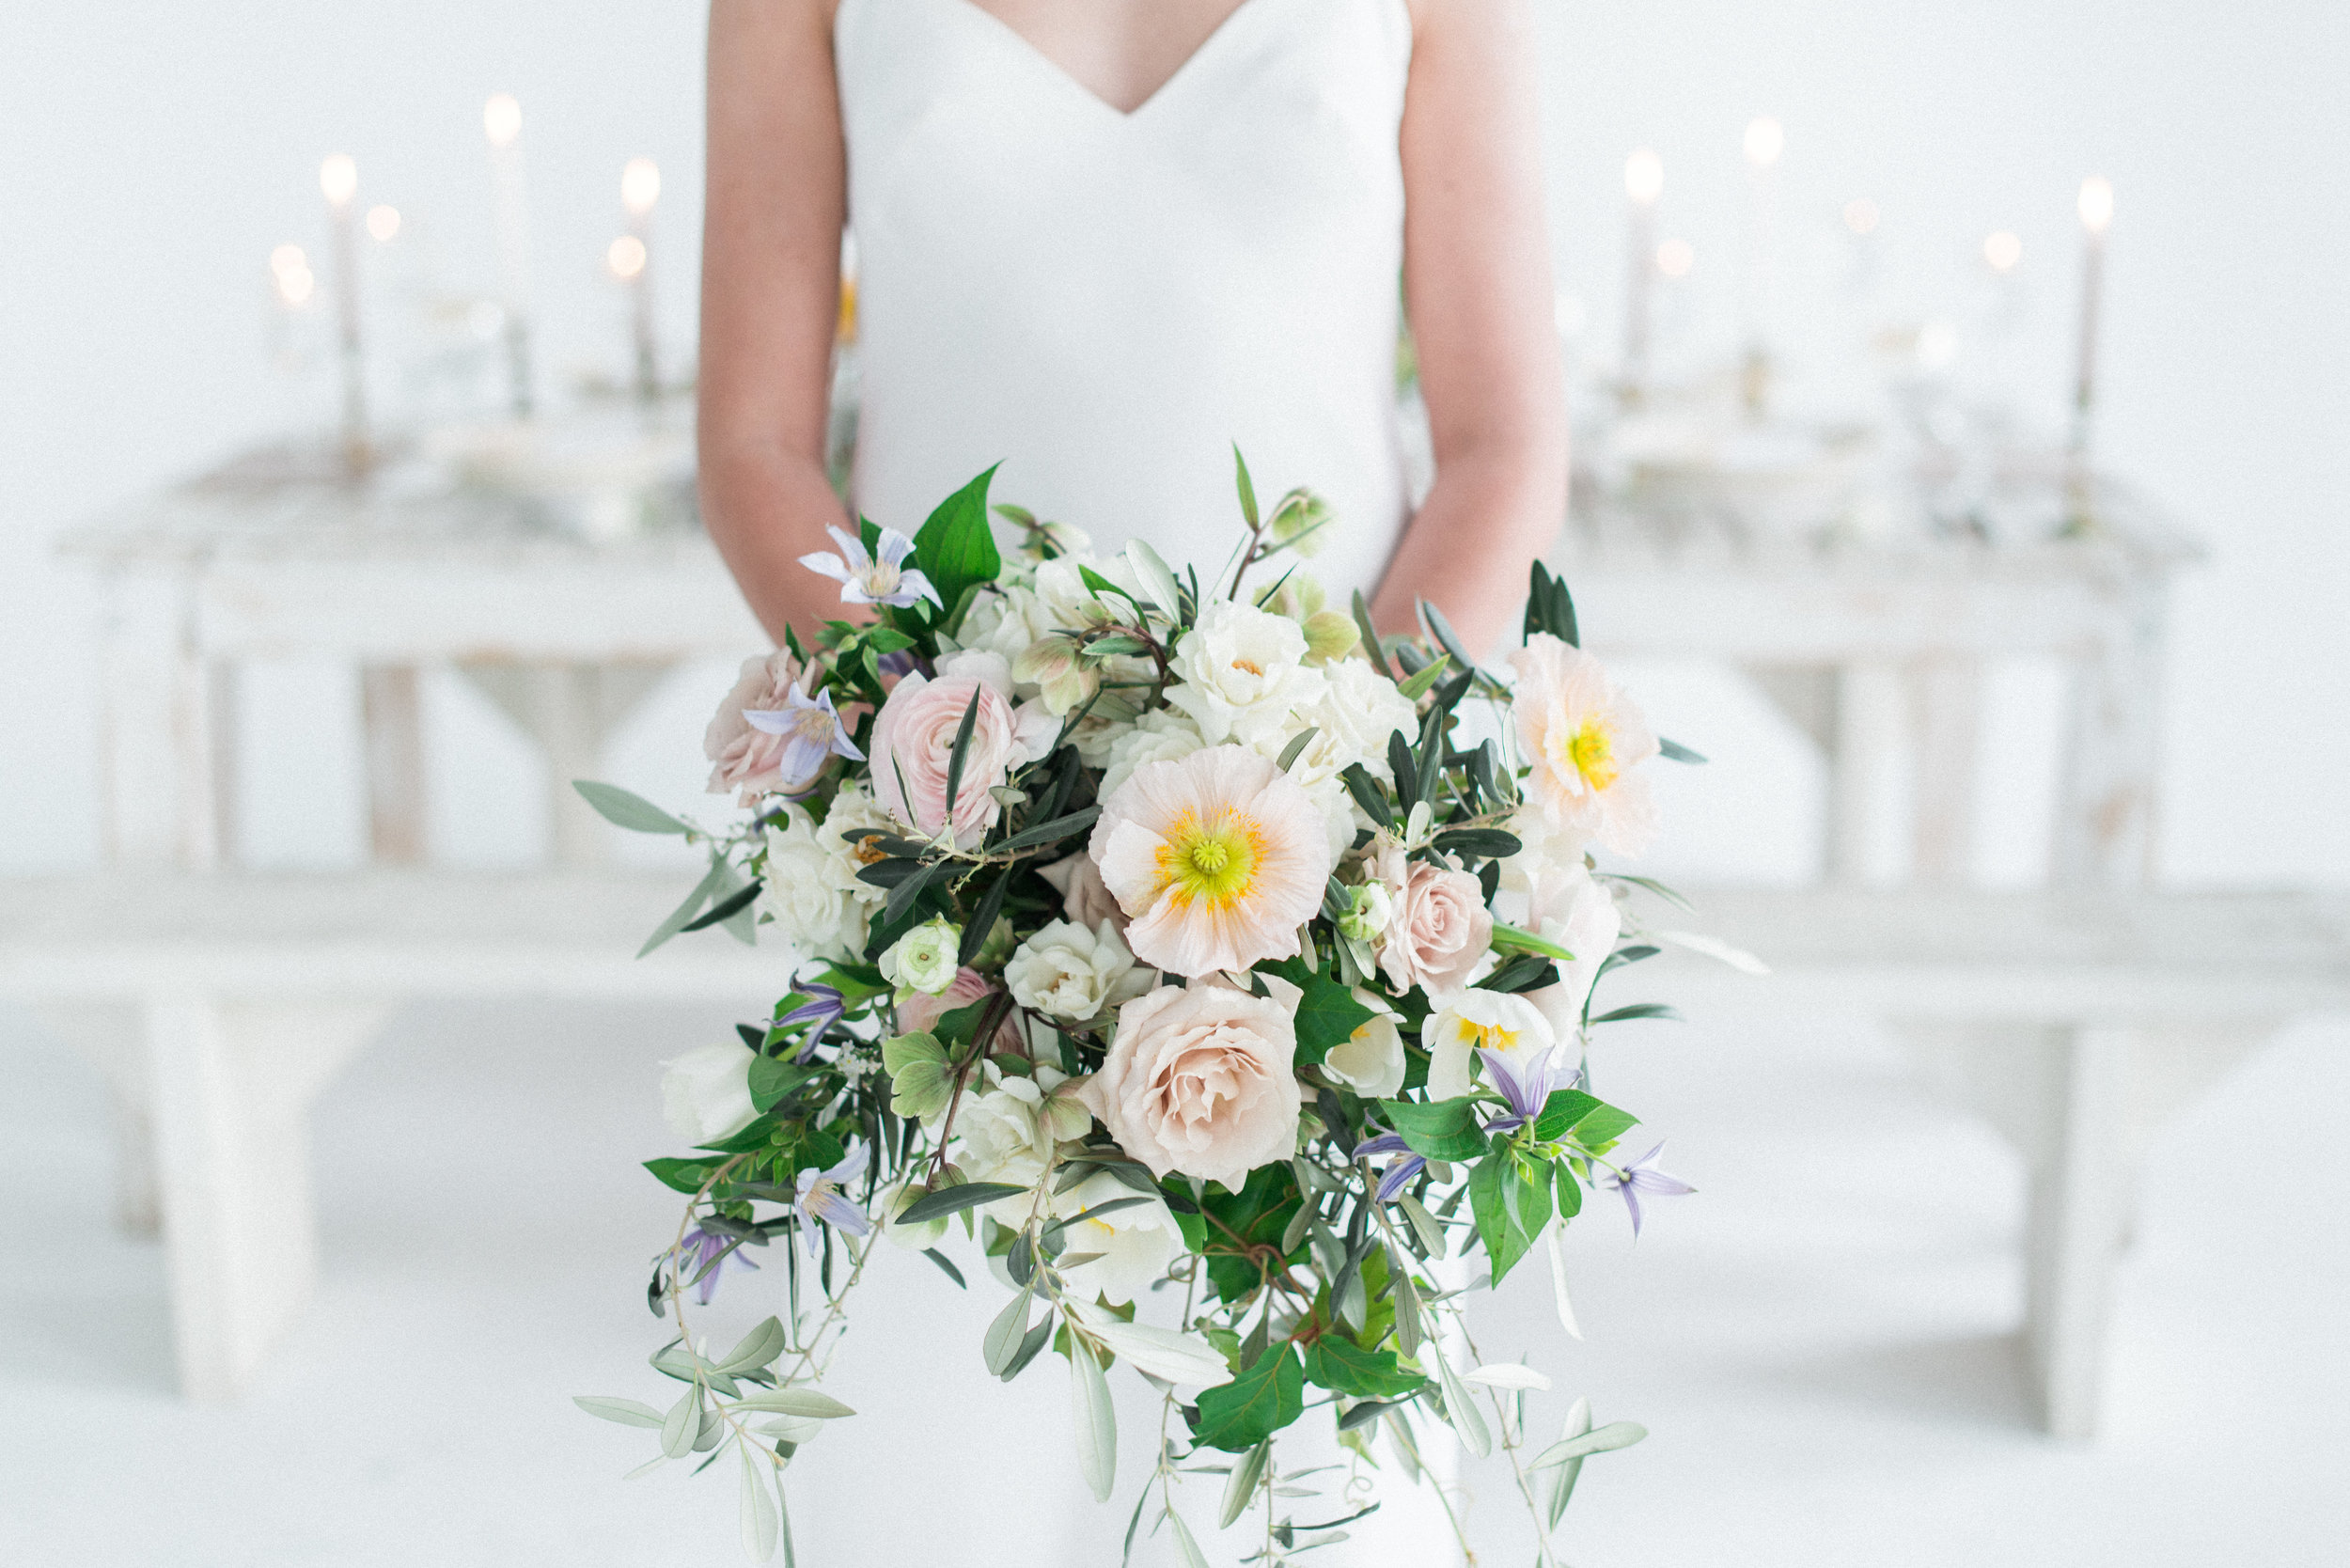 Laura Kelly Photography, Toast Events, Floralia